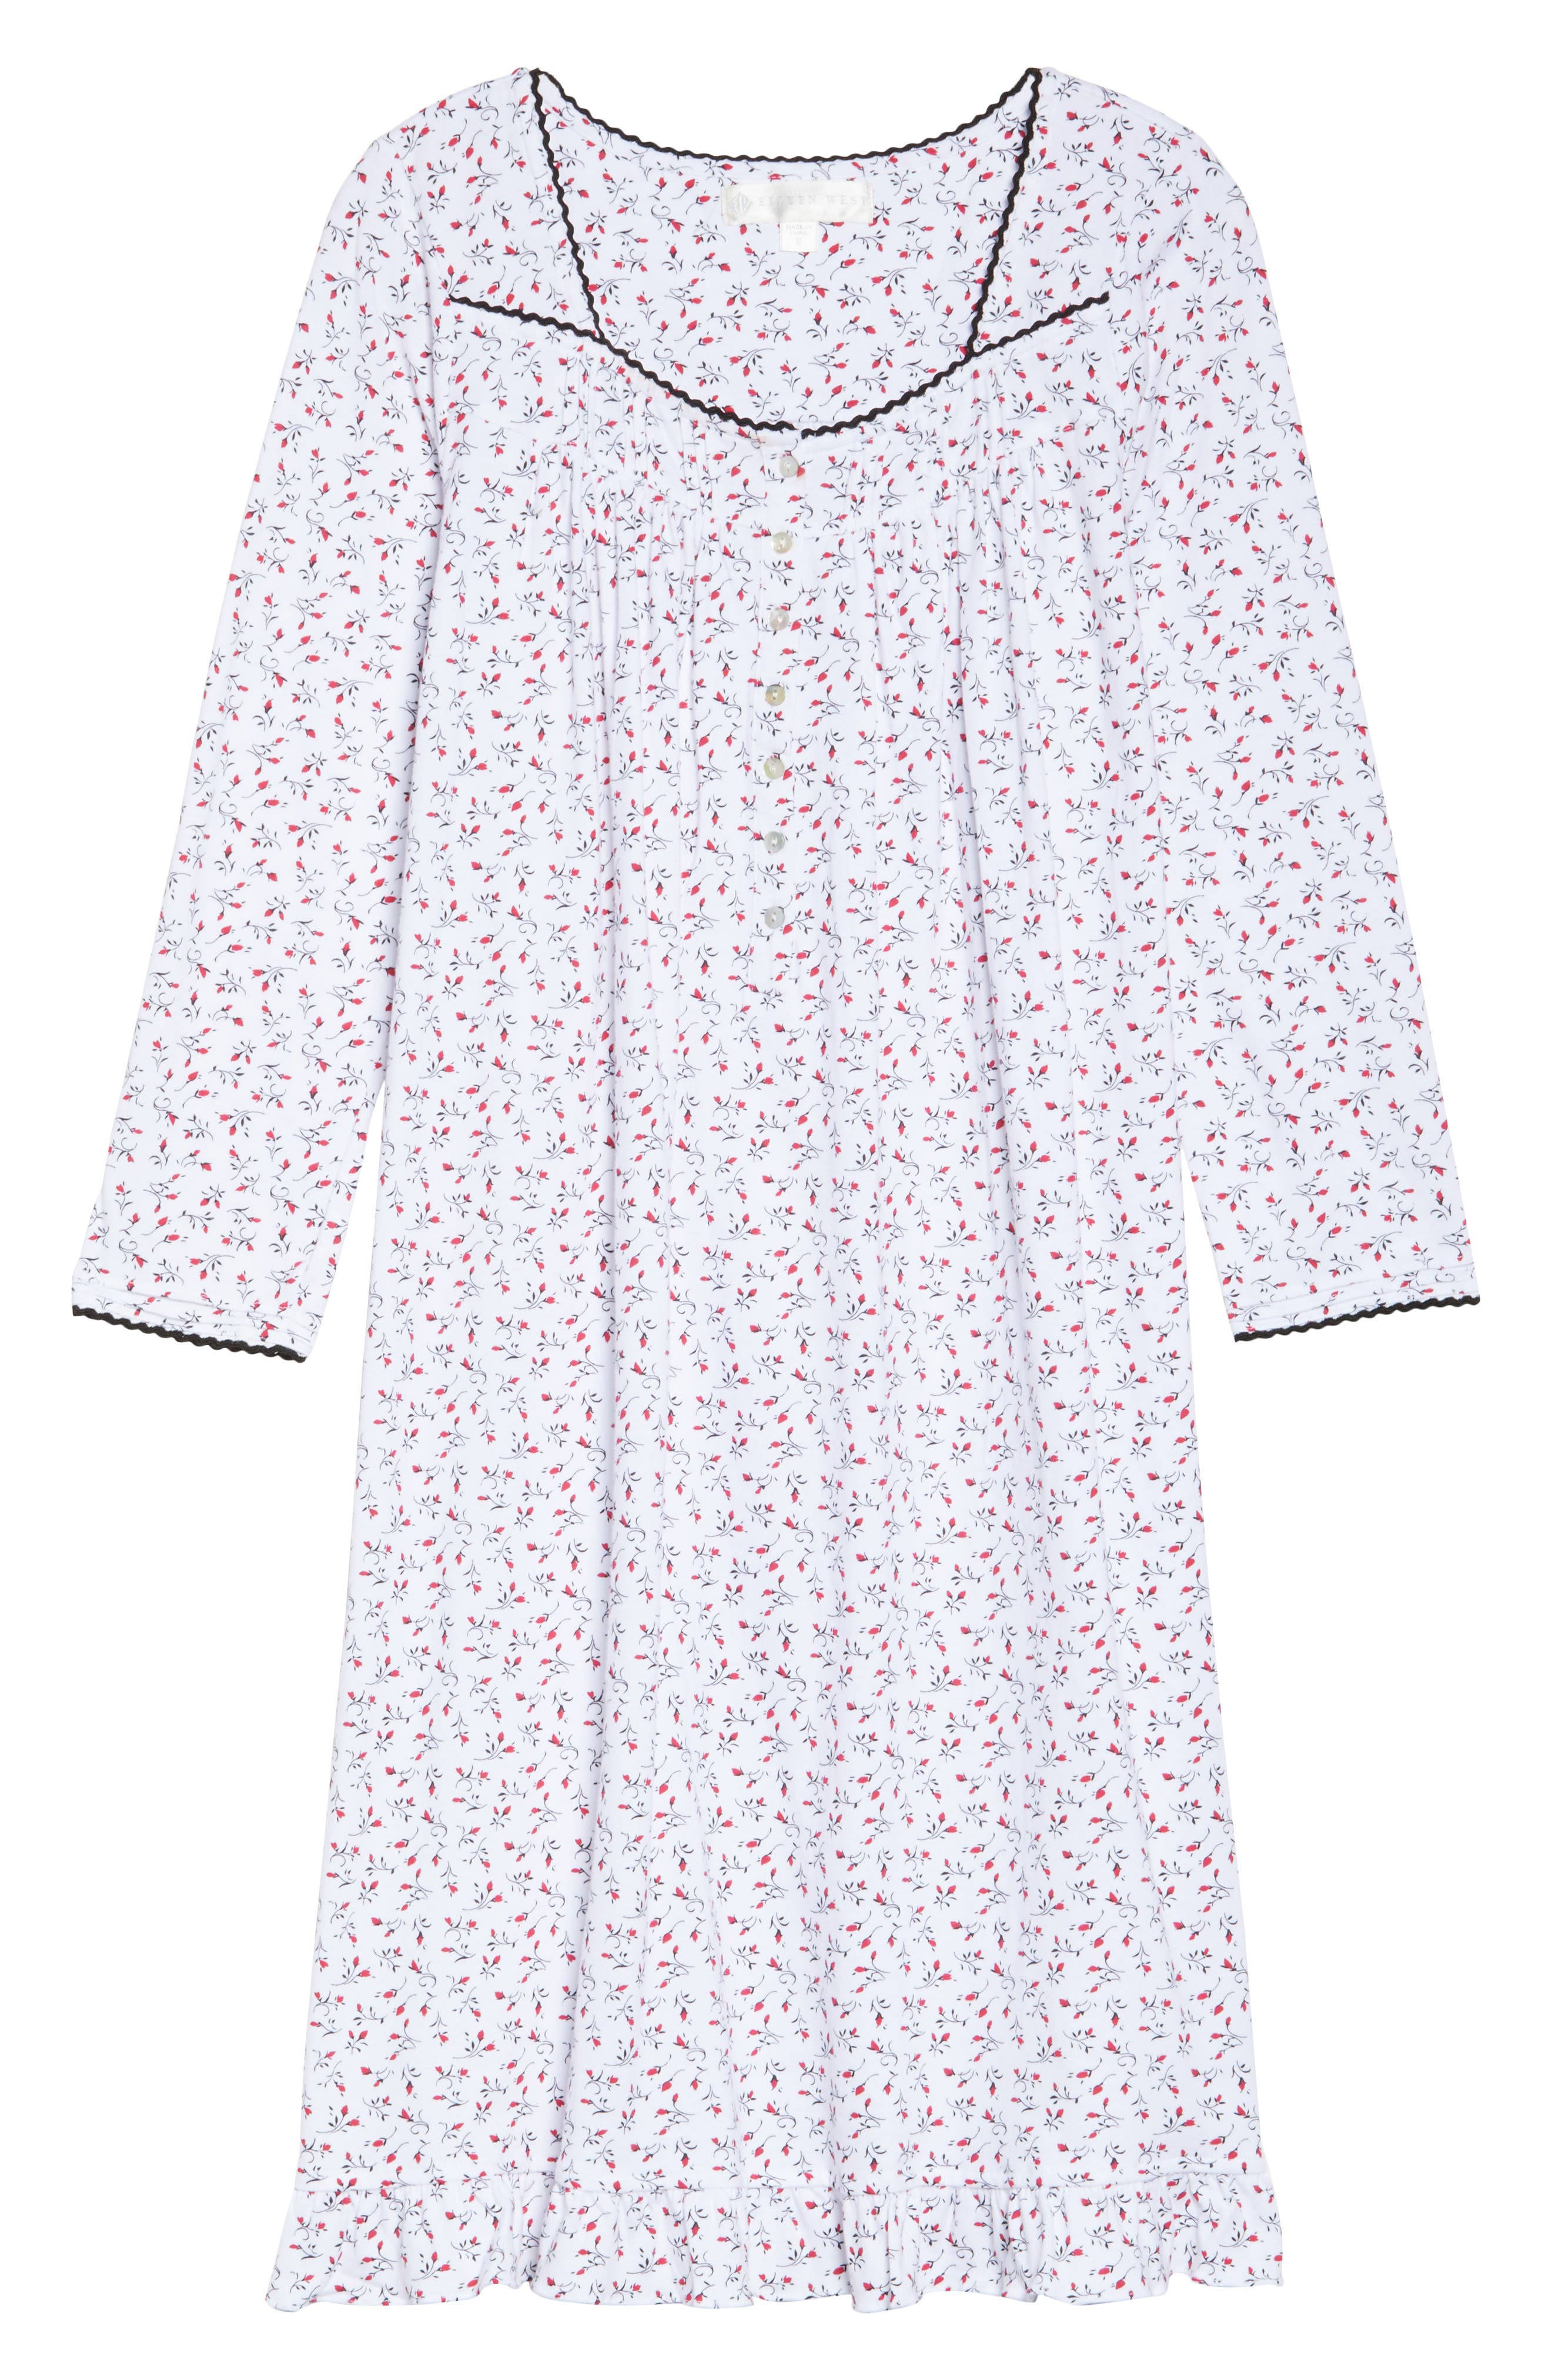 Short Nightgown,                             Alternate thumbnail 4, color,                             Red And Black Bud